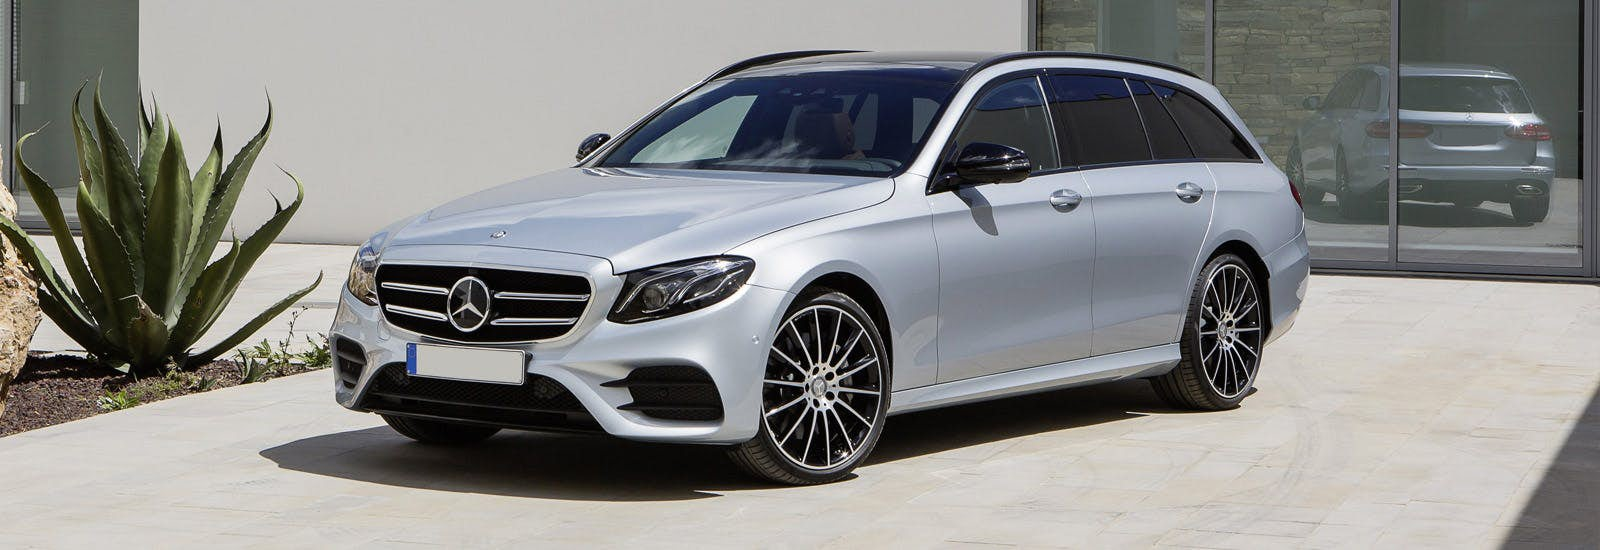 2008 10best cars 10best cars page 2 car and driver - 5 Mercedes E Class Estate